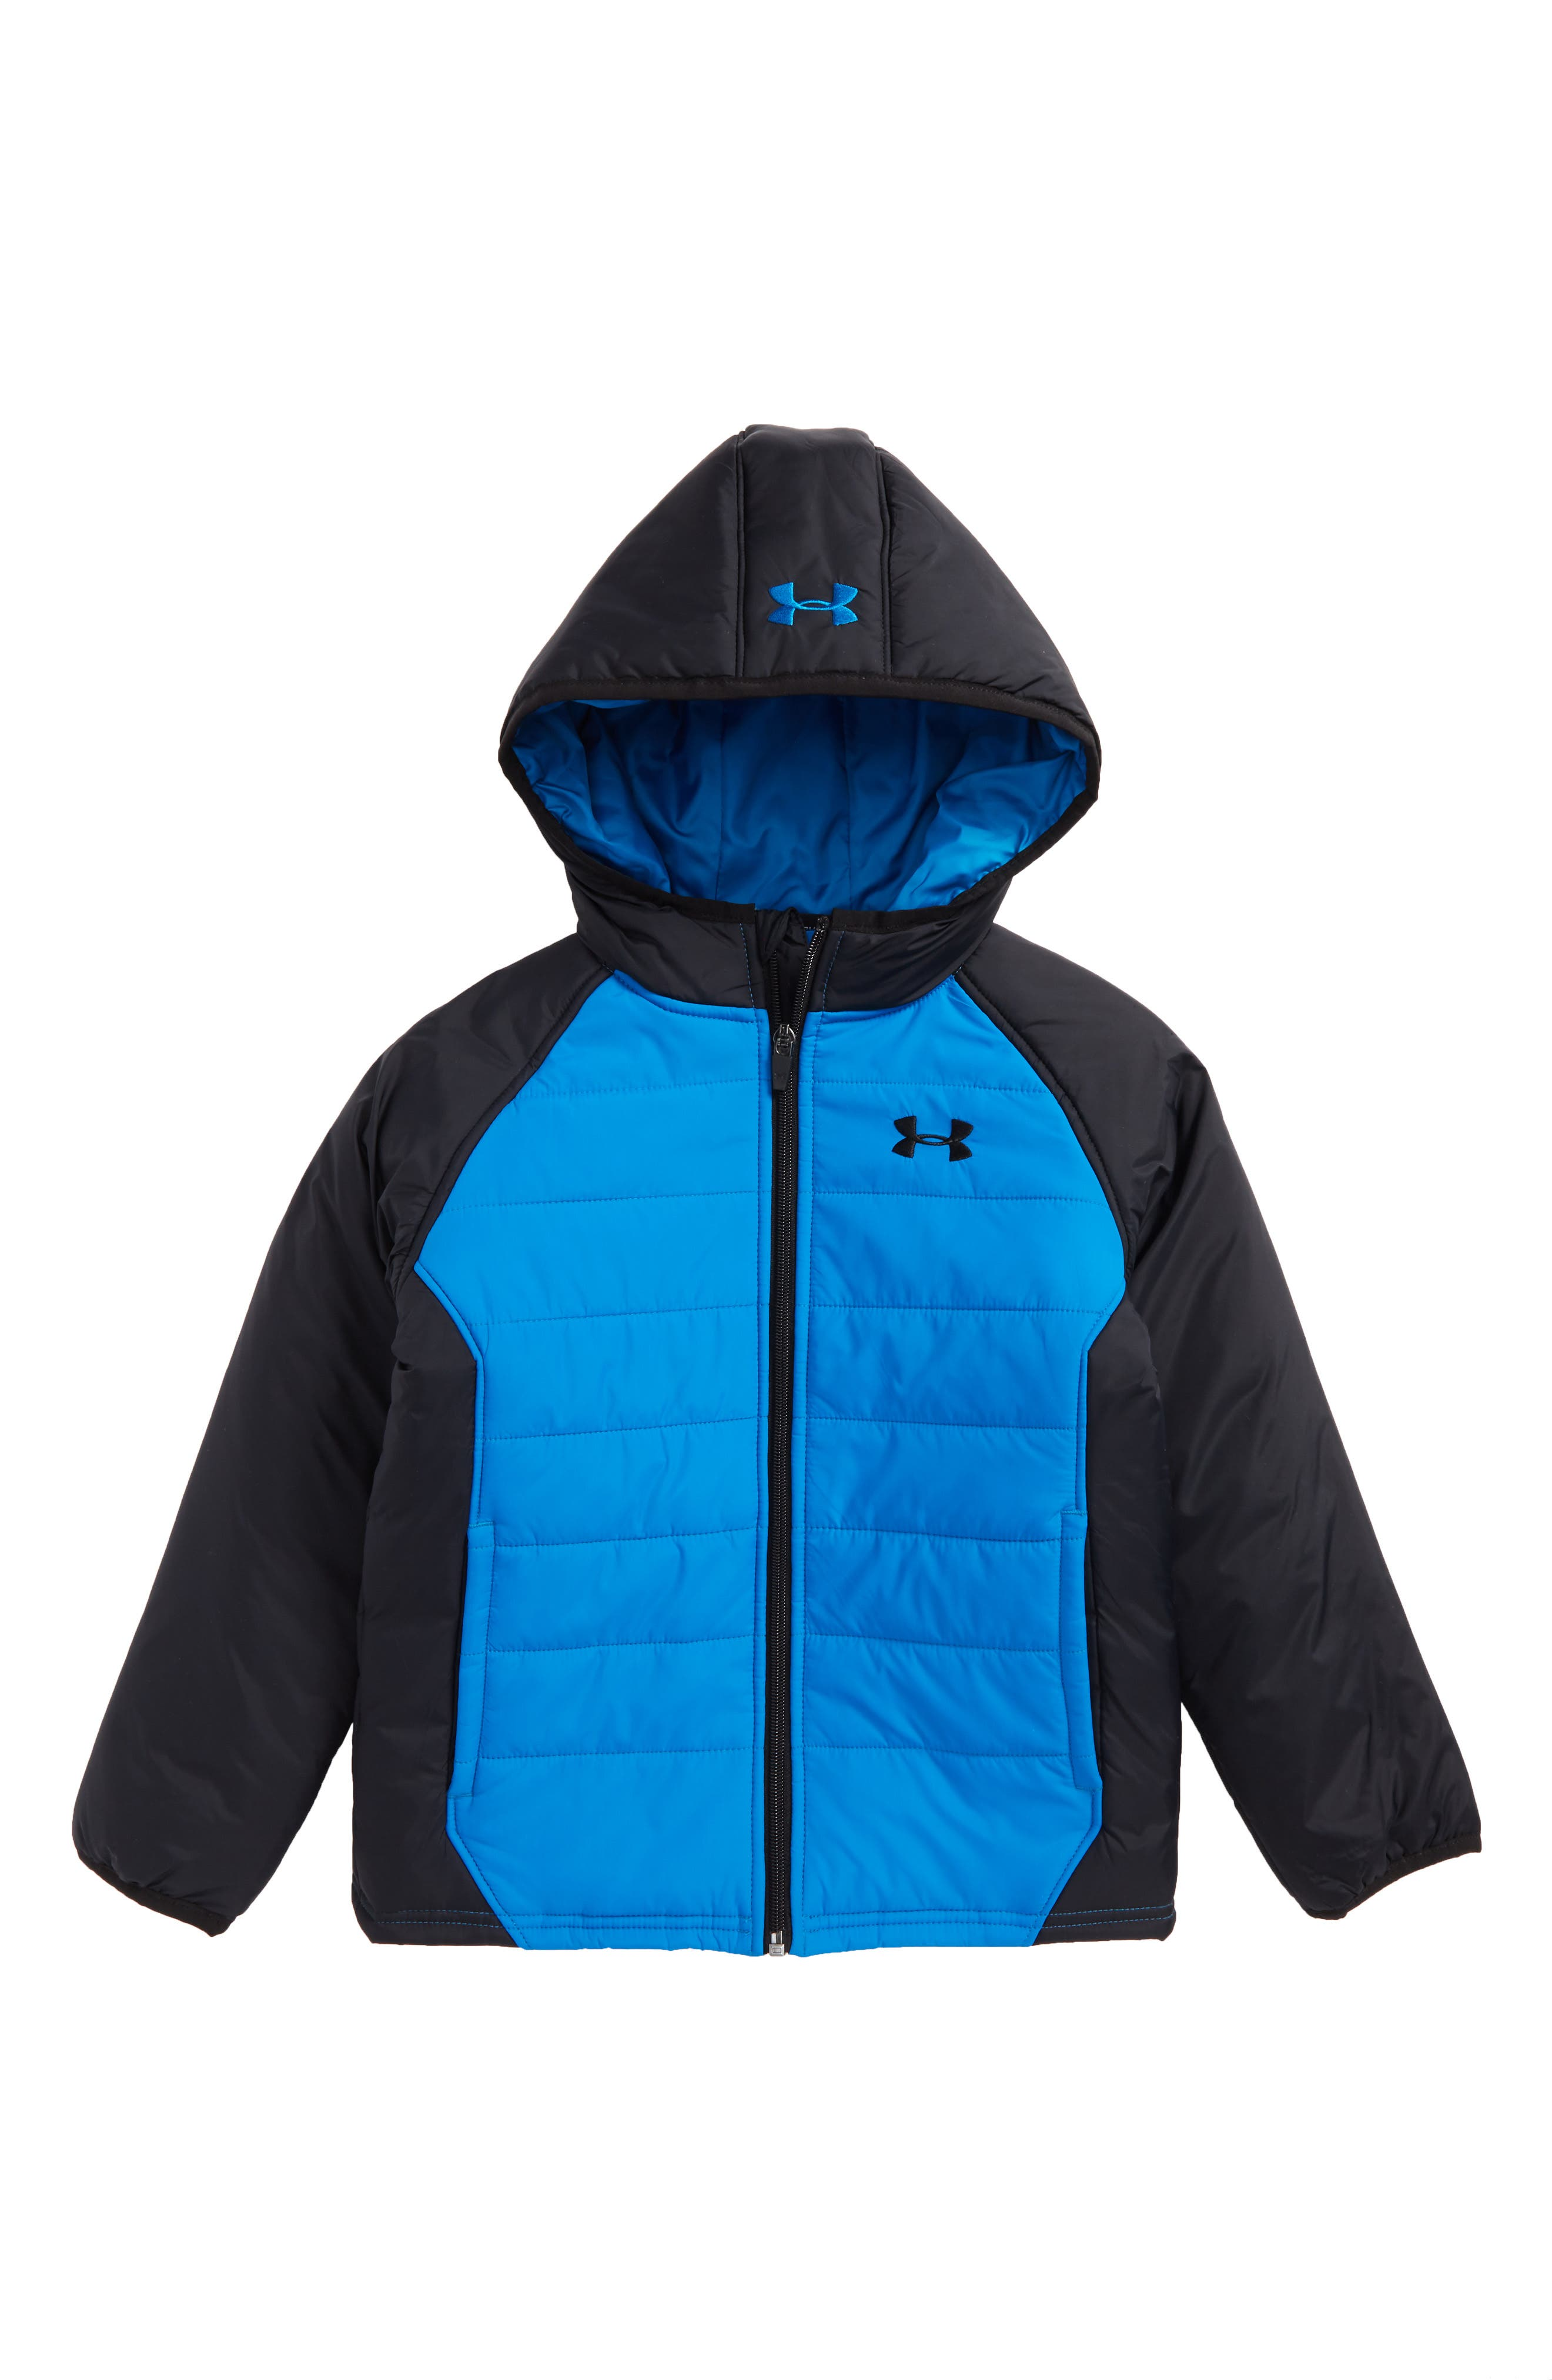 Werewolf Water Resistant ColdGear<sup>®</sup> Hooded Puffer Jacket,                             Main thumbnail 1, color,                             Cruise Blue